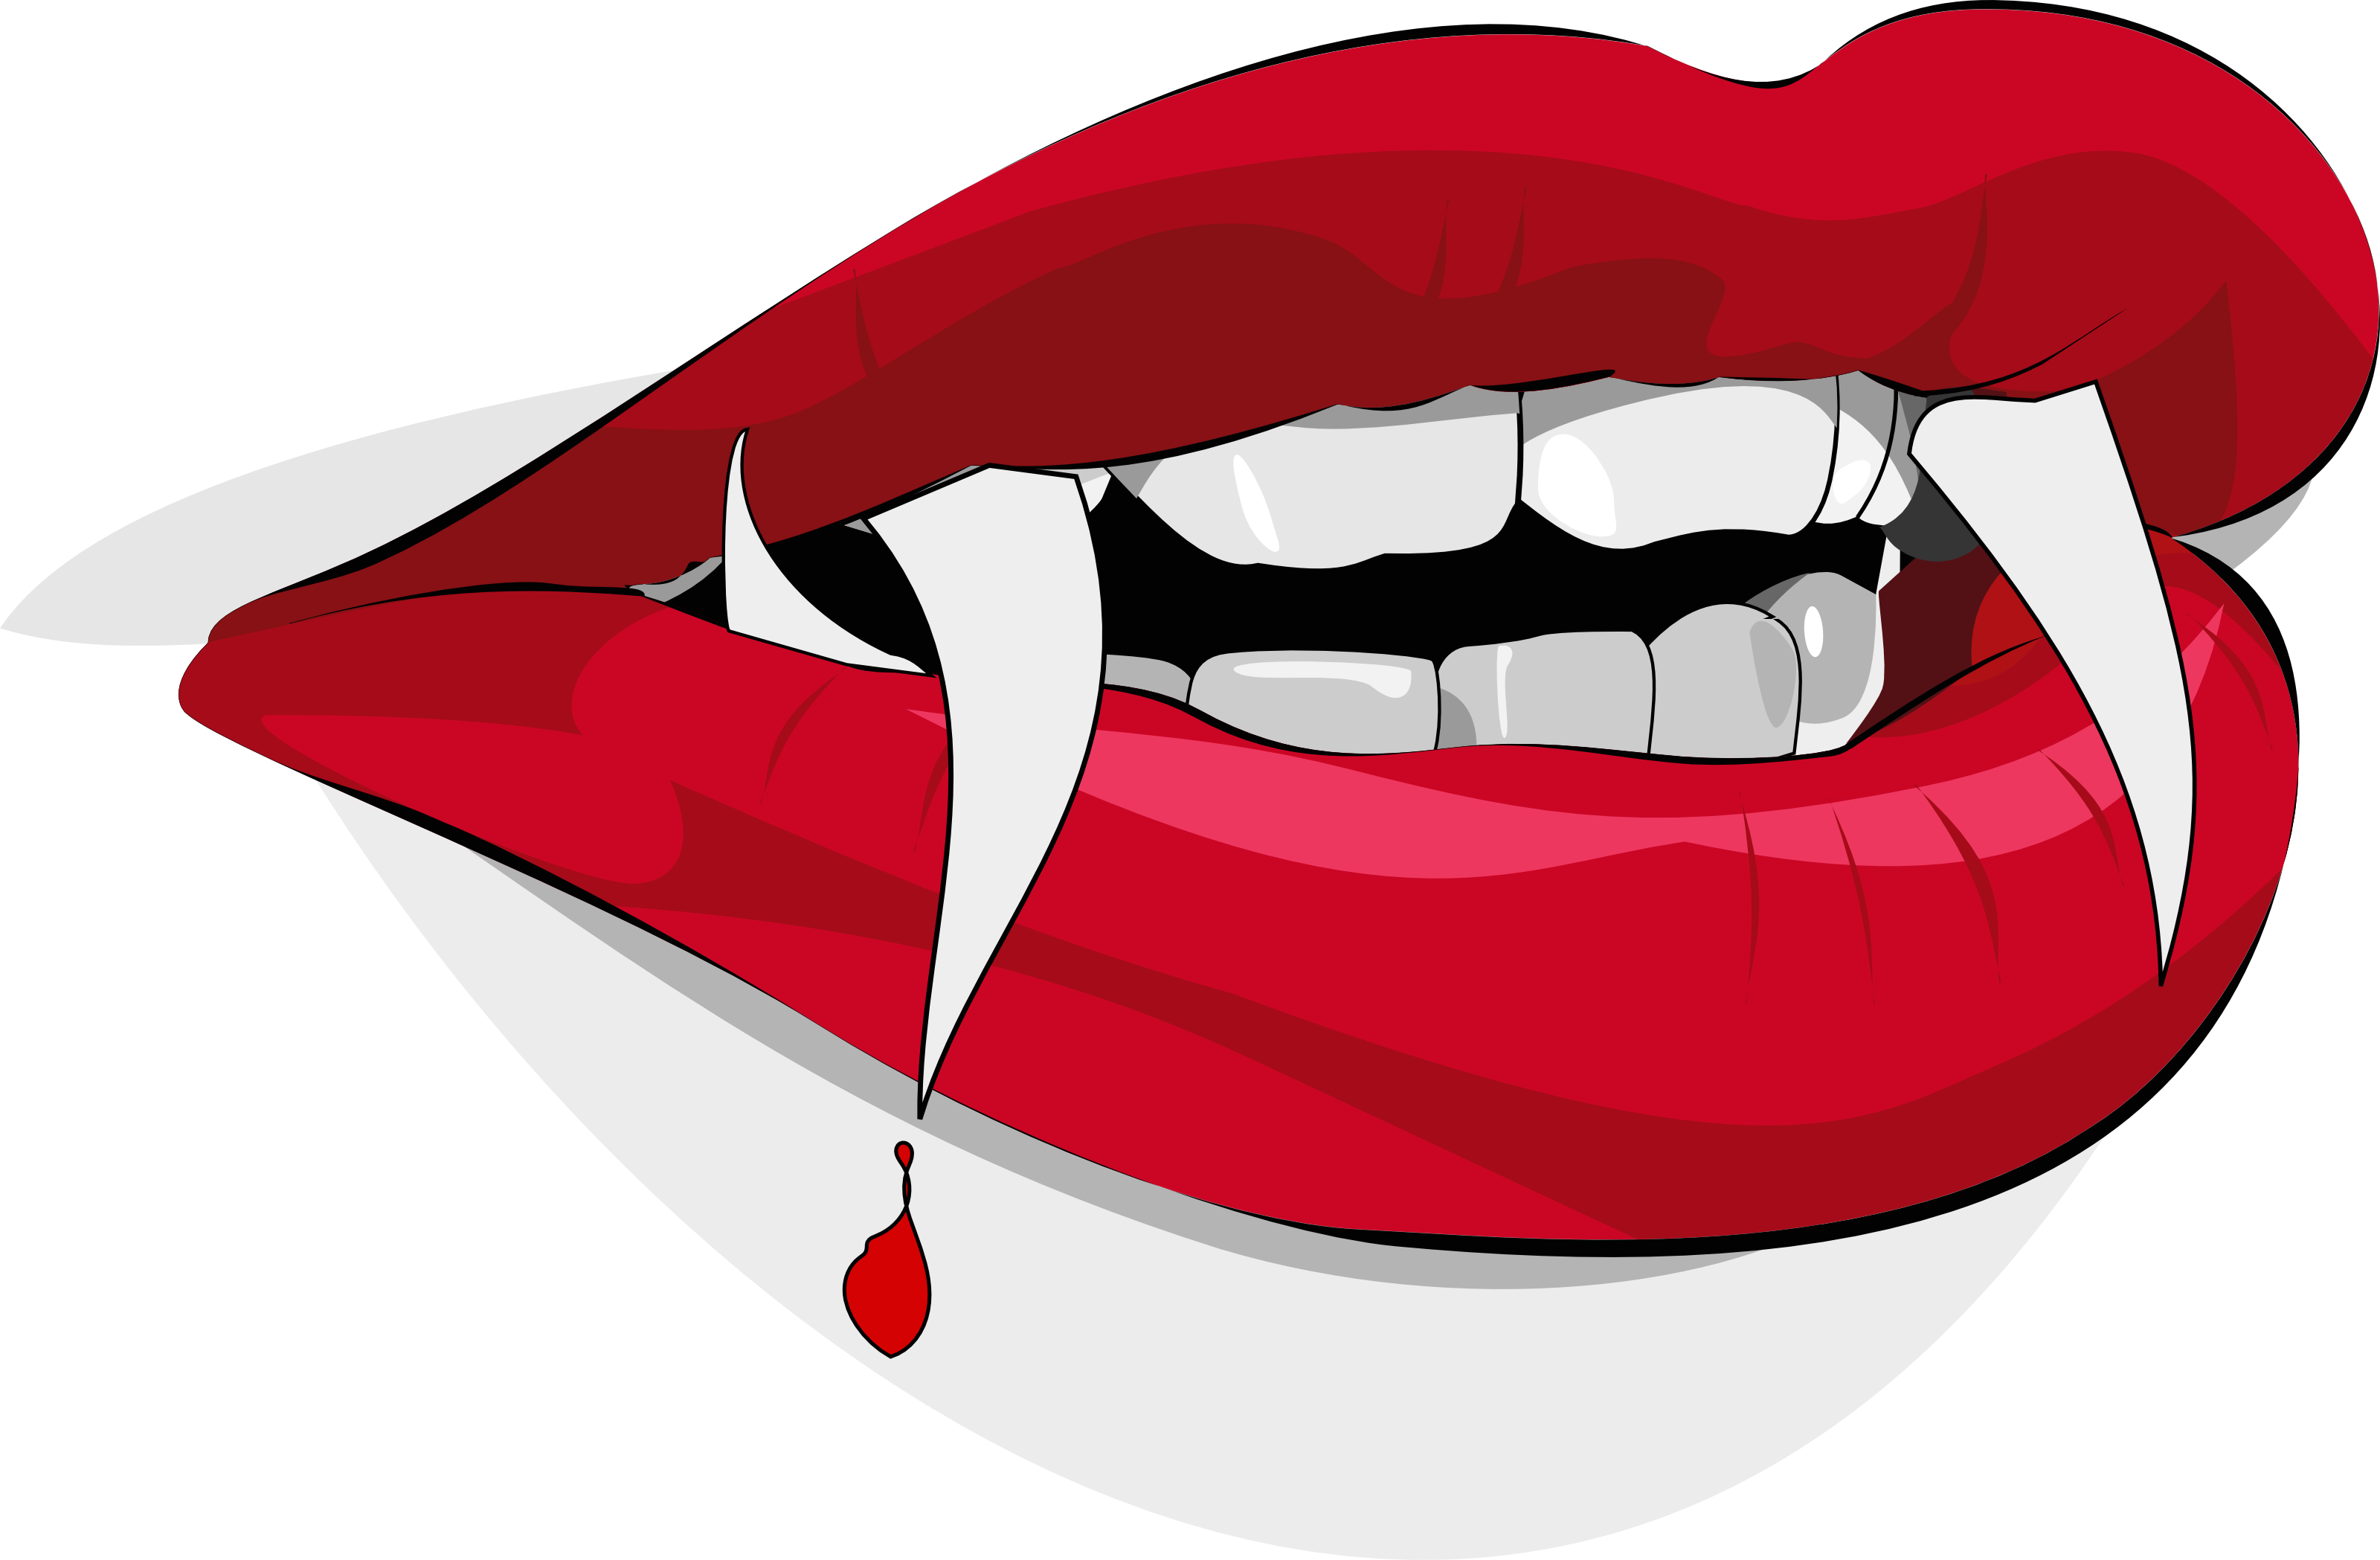 Tooth clipart halloween. Vampire at getdrawings com